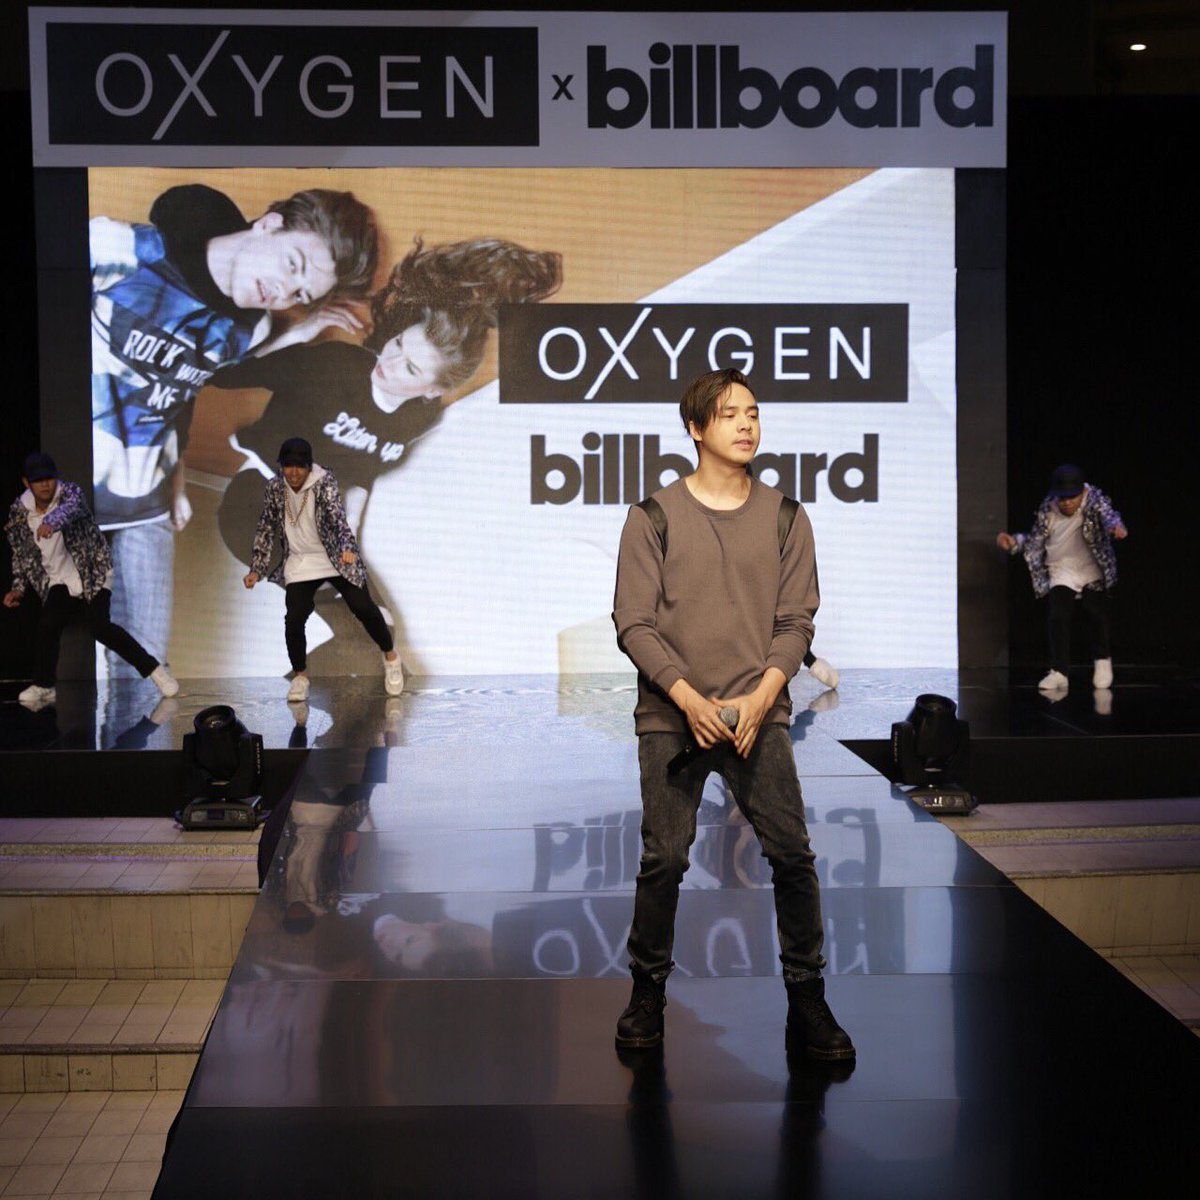 @sam_concepcion performed Sorry and Can't Feel My Face, @billboard's Top 100, for #OXYGENxBILLBOARD fashion show! https://t.co/z86yoThODi